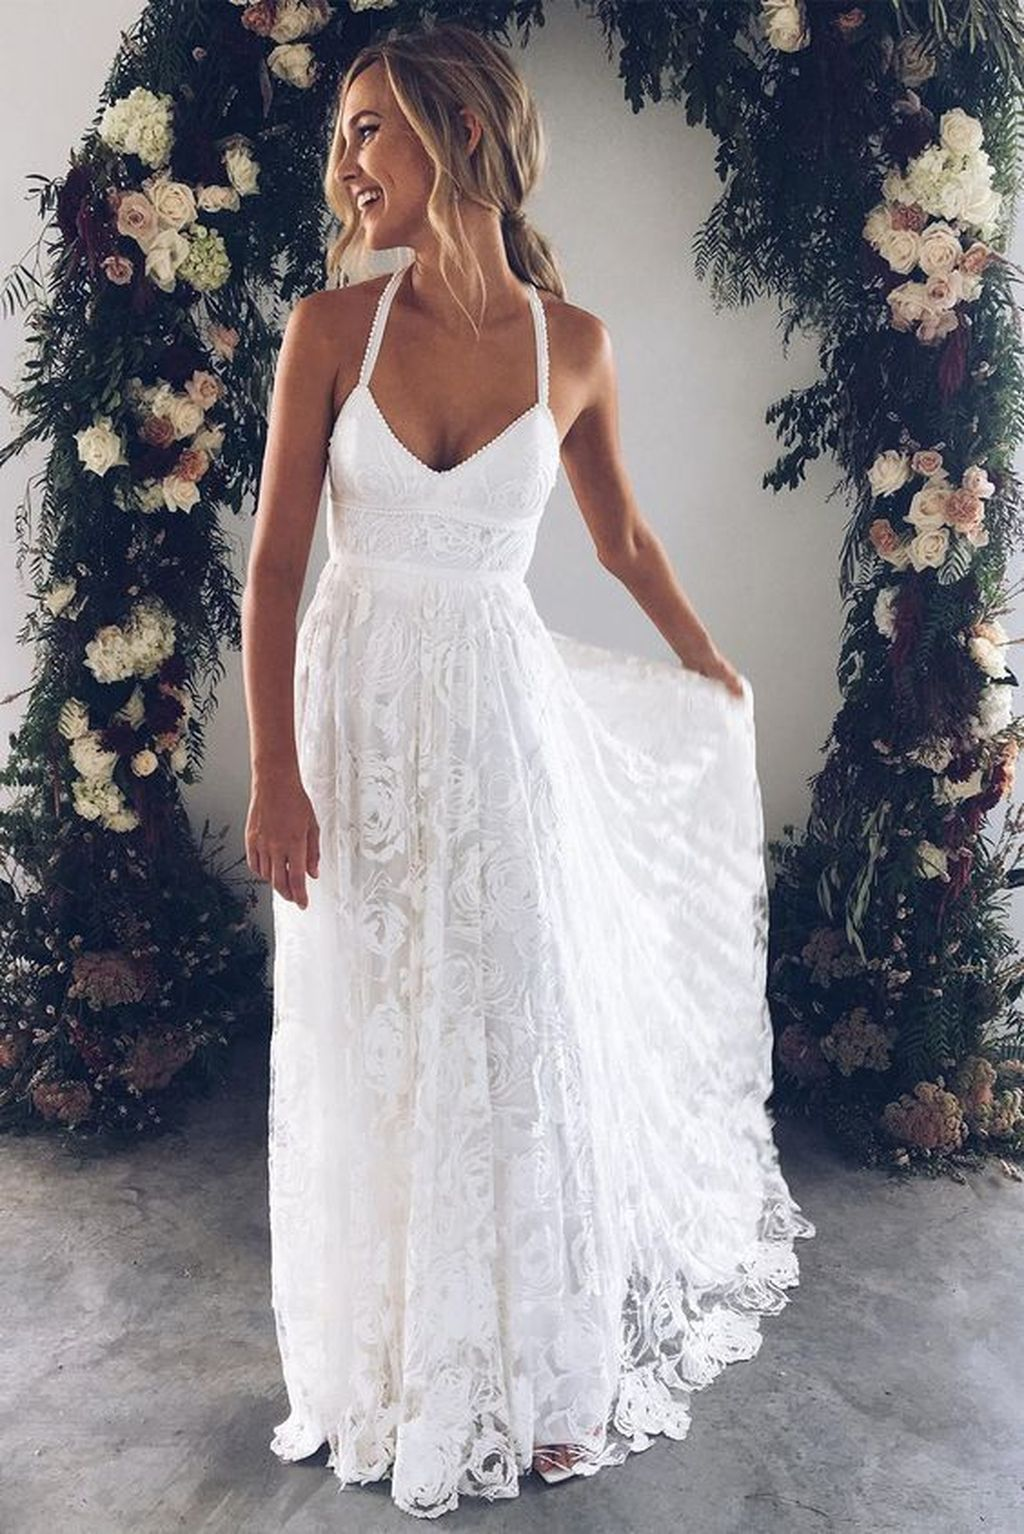 Casual Wedding Dress For Beach Wedding Clearance Sale, UP TO 18 OFF